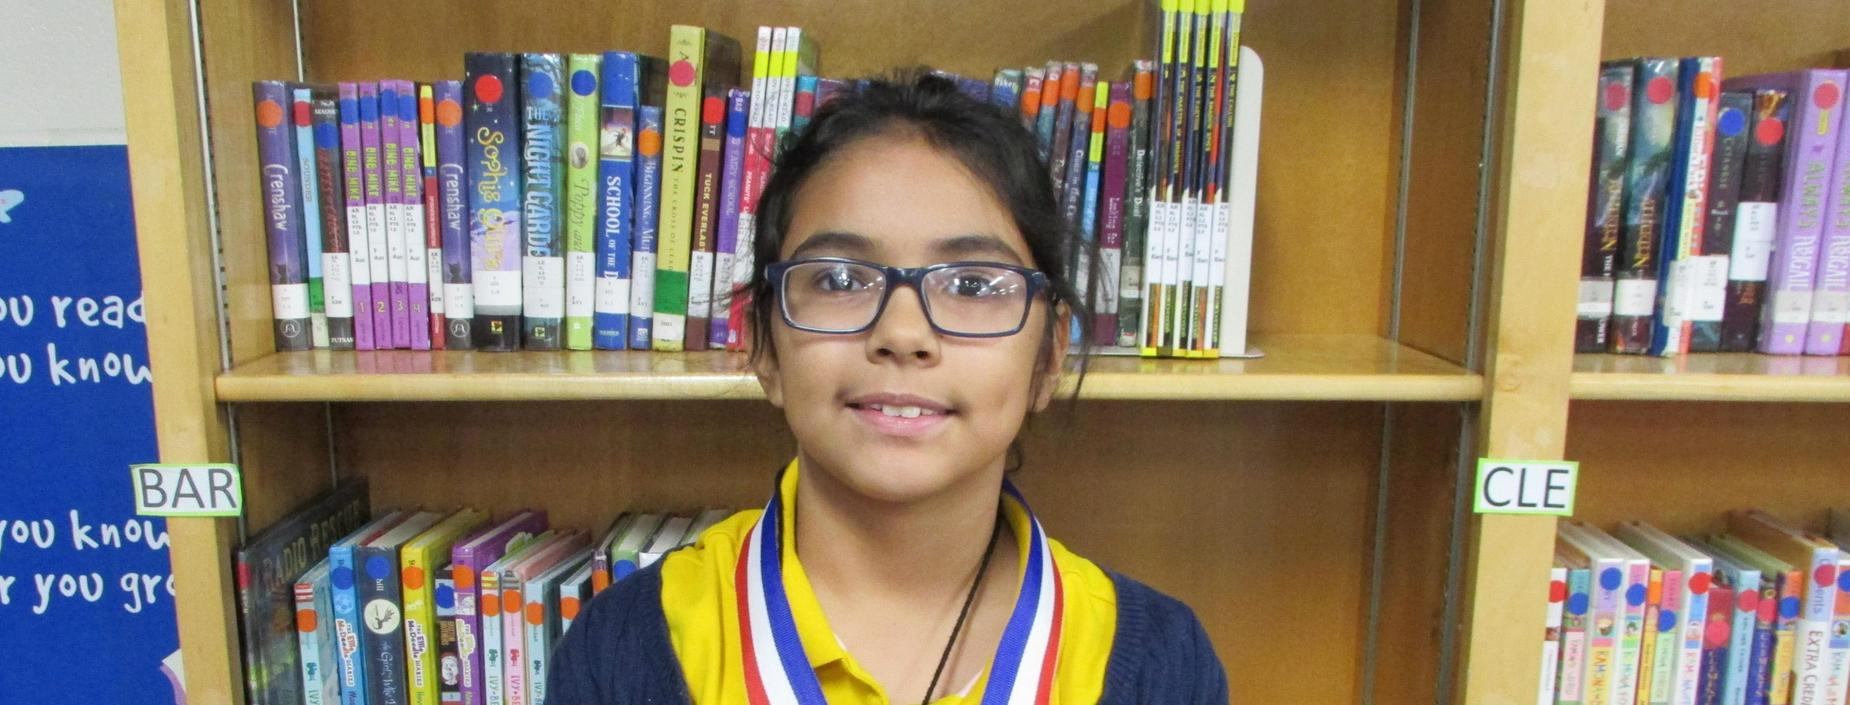 3rd Place Spelling Bee